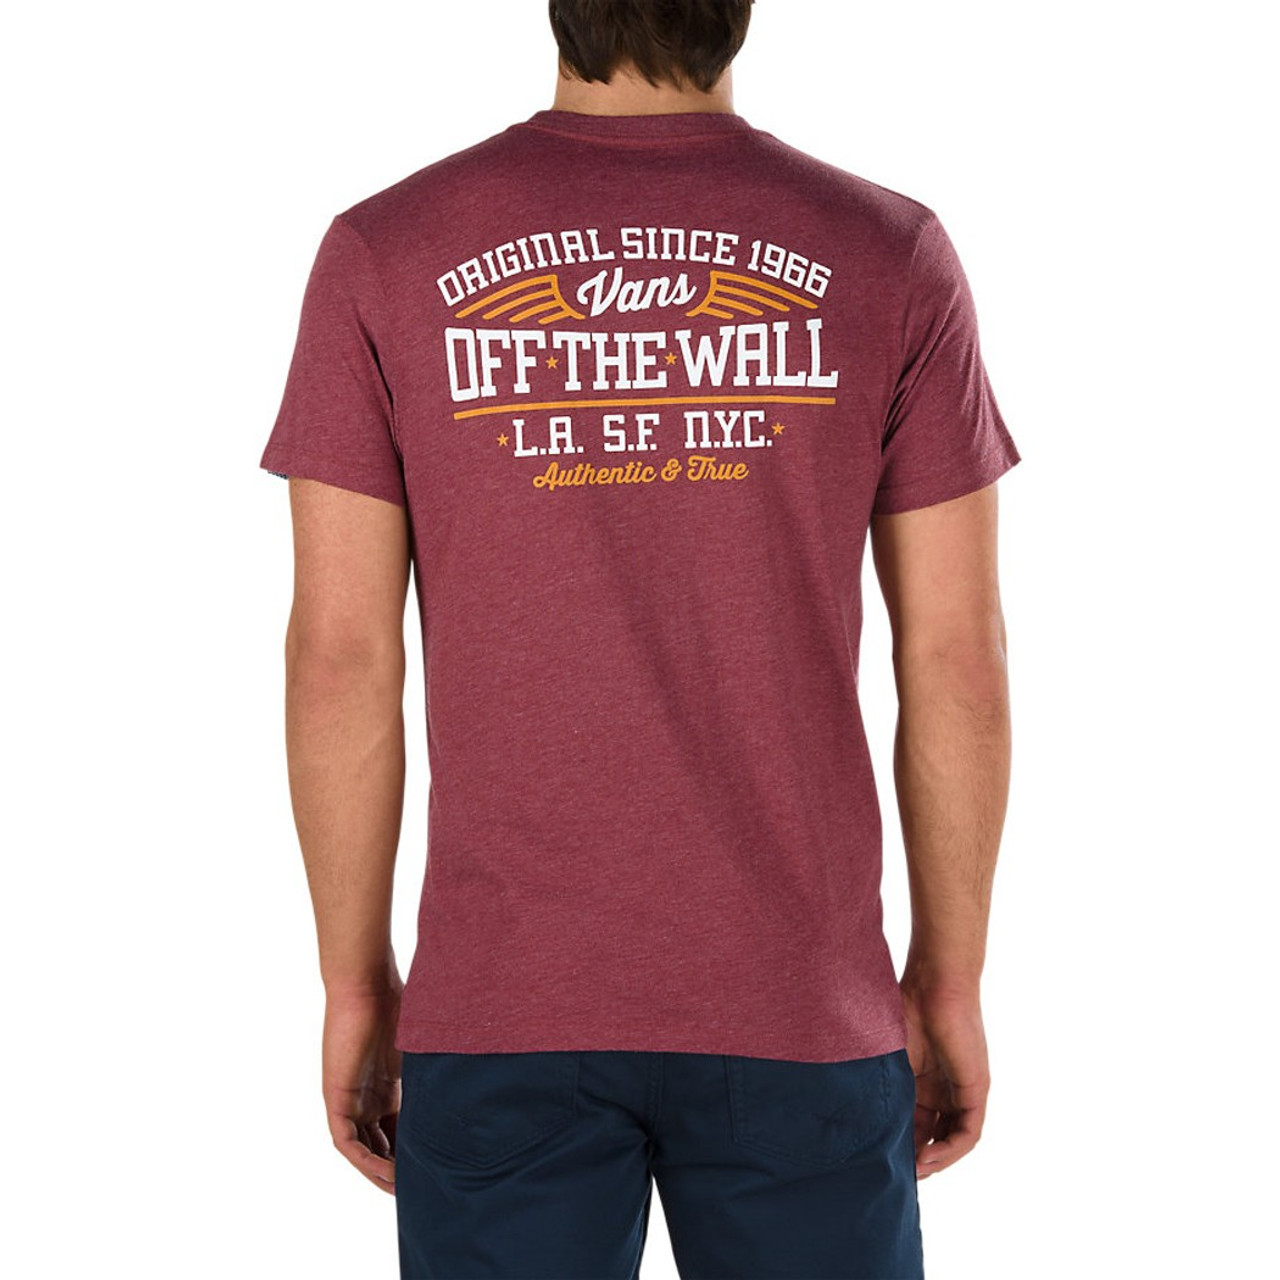 e610b002 Vans Tee Shirt - Since 66 Pocket - Burgundy Heather